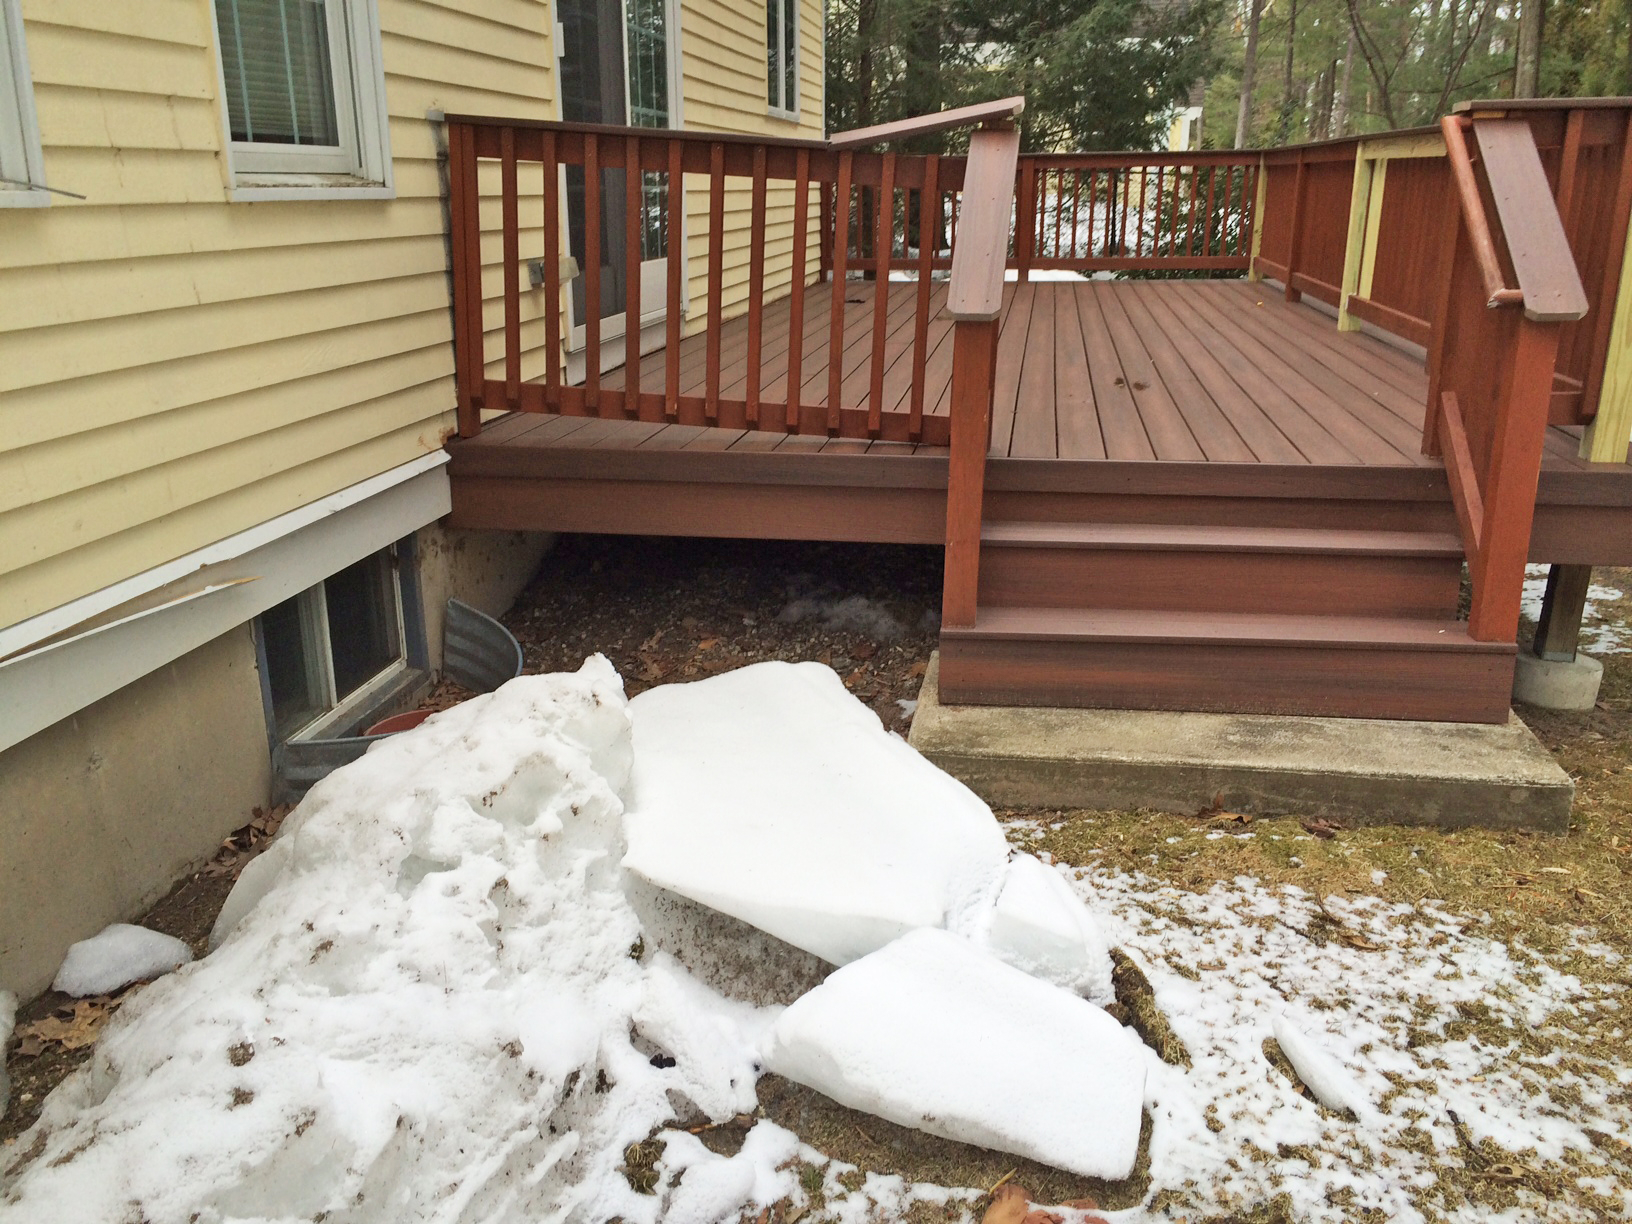 Will Snow Damage My Deck This Winter Tips For Clearing Snow From for dimensions 1632 X 1224